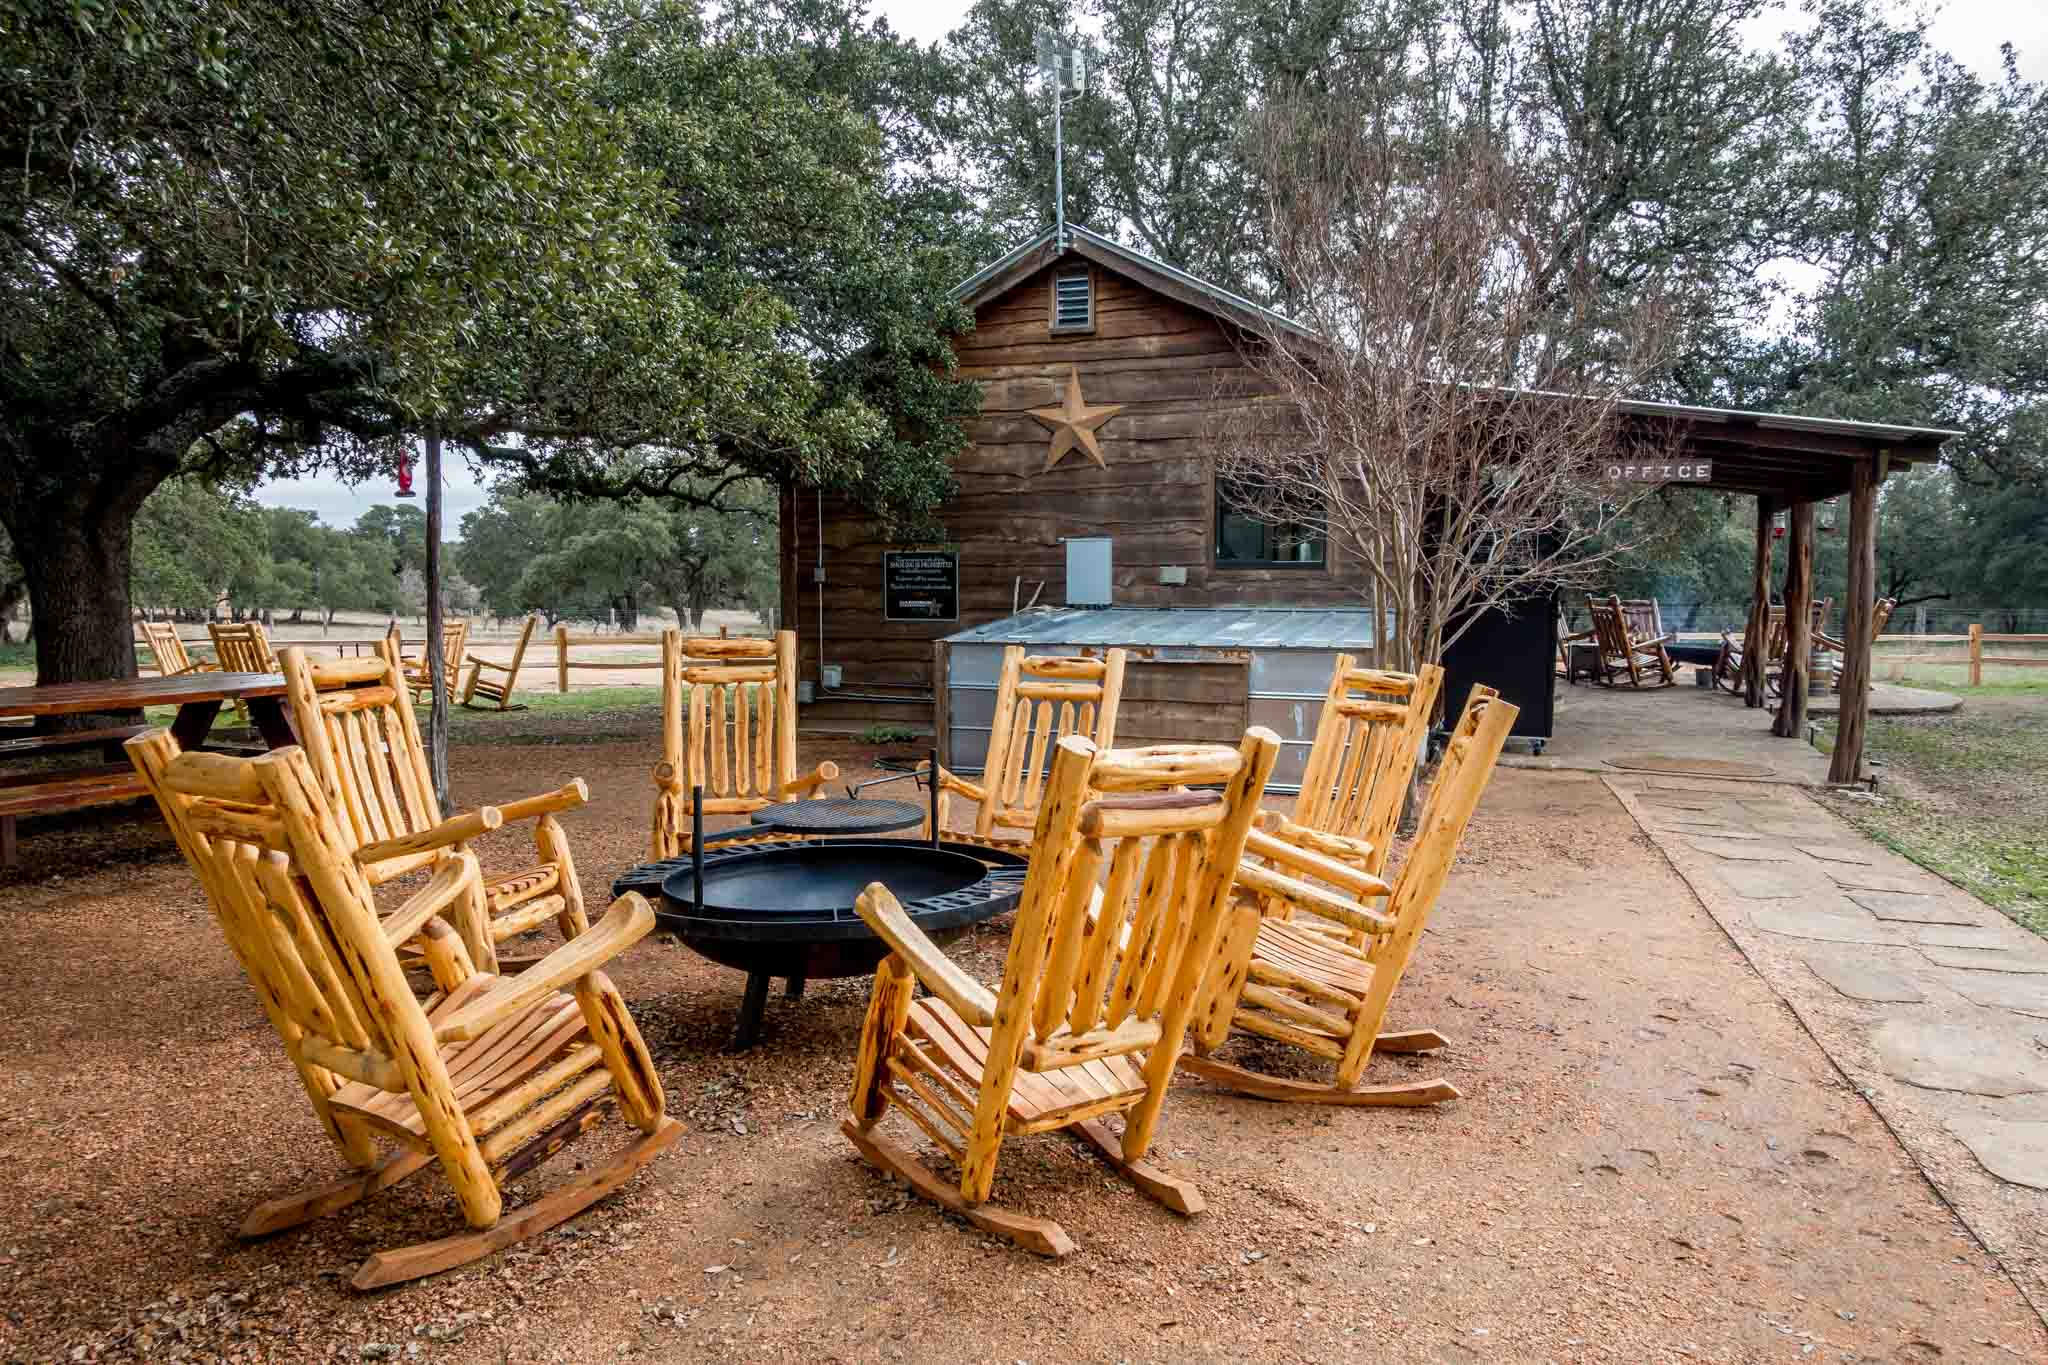 Rocking chairs around fire pit outside a wooden building